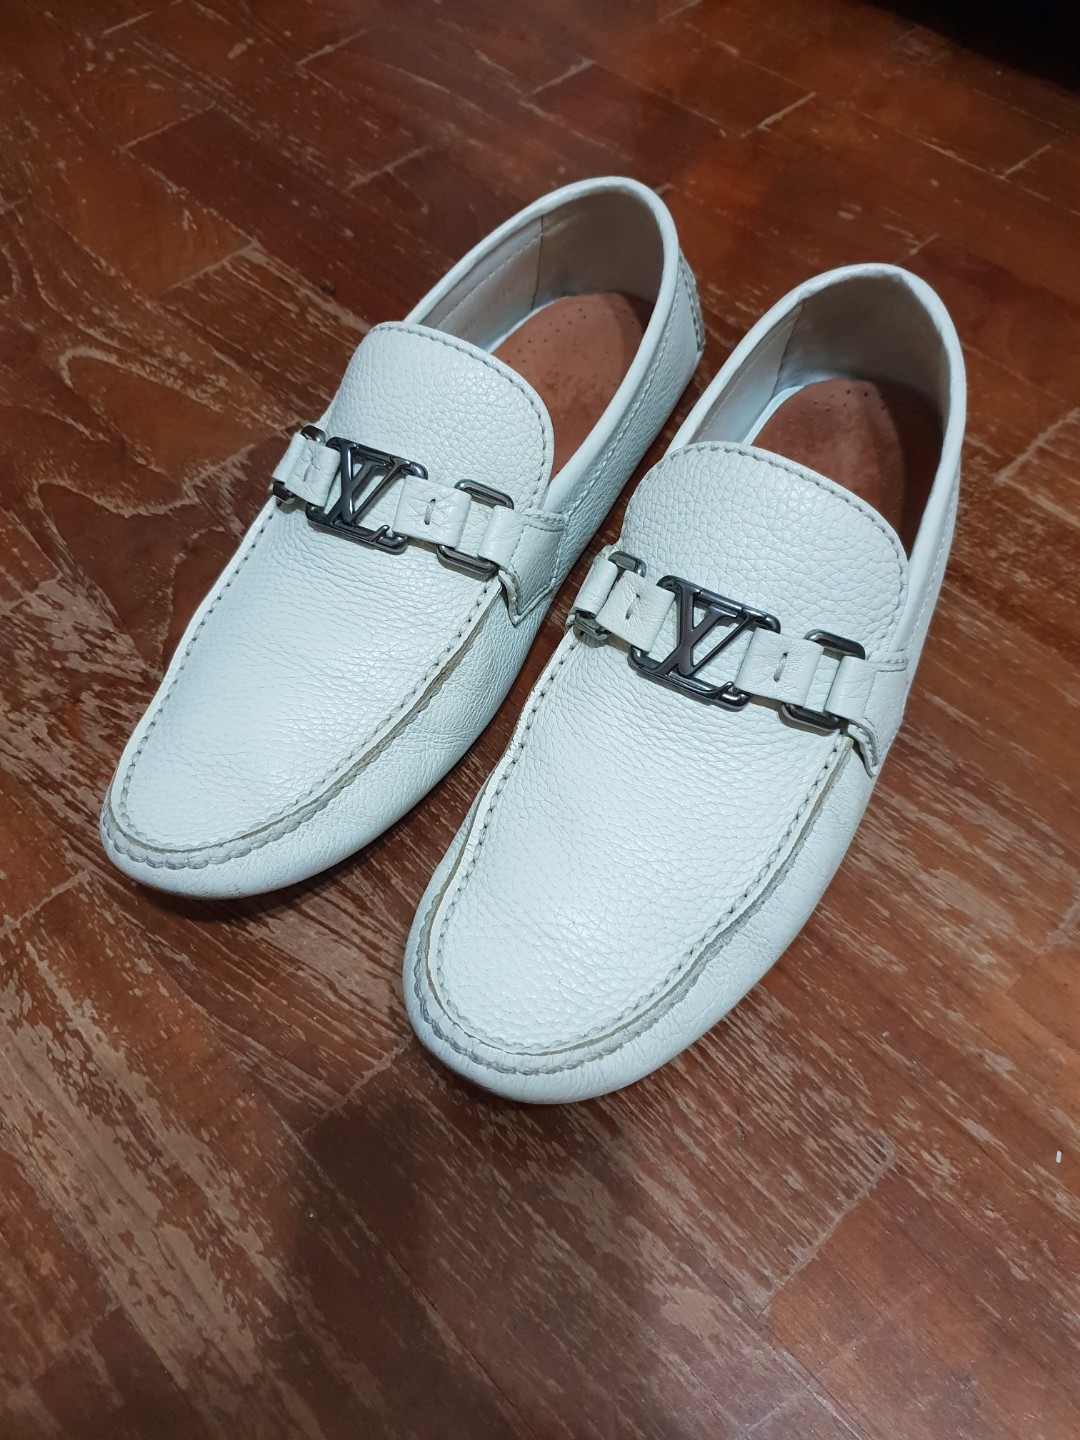 71e527b61b24 Louis Vuitton White Leather Hockenheim Moccasin Loafers